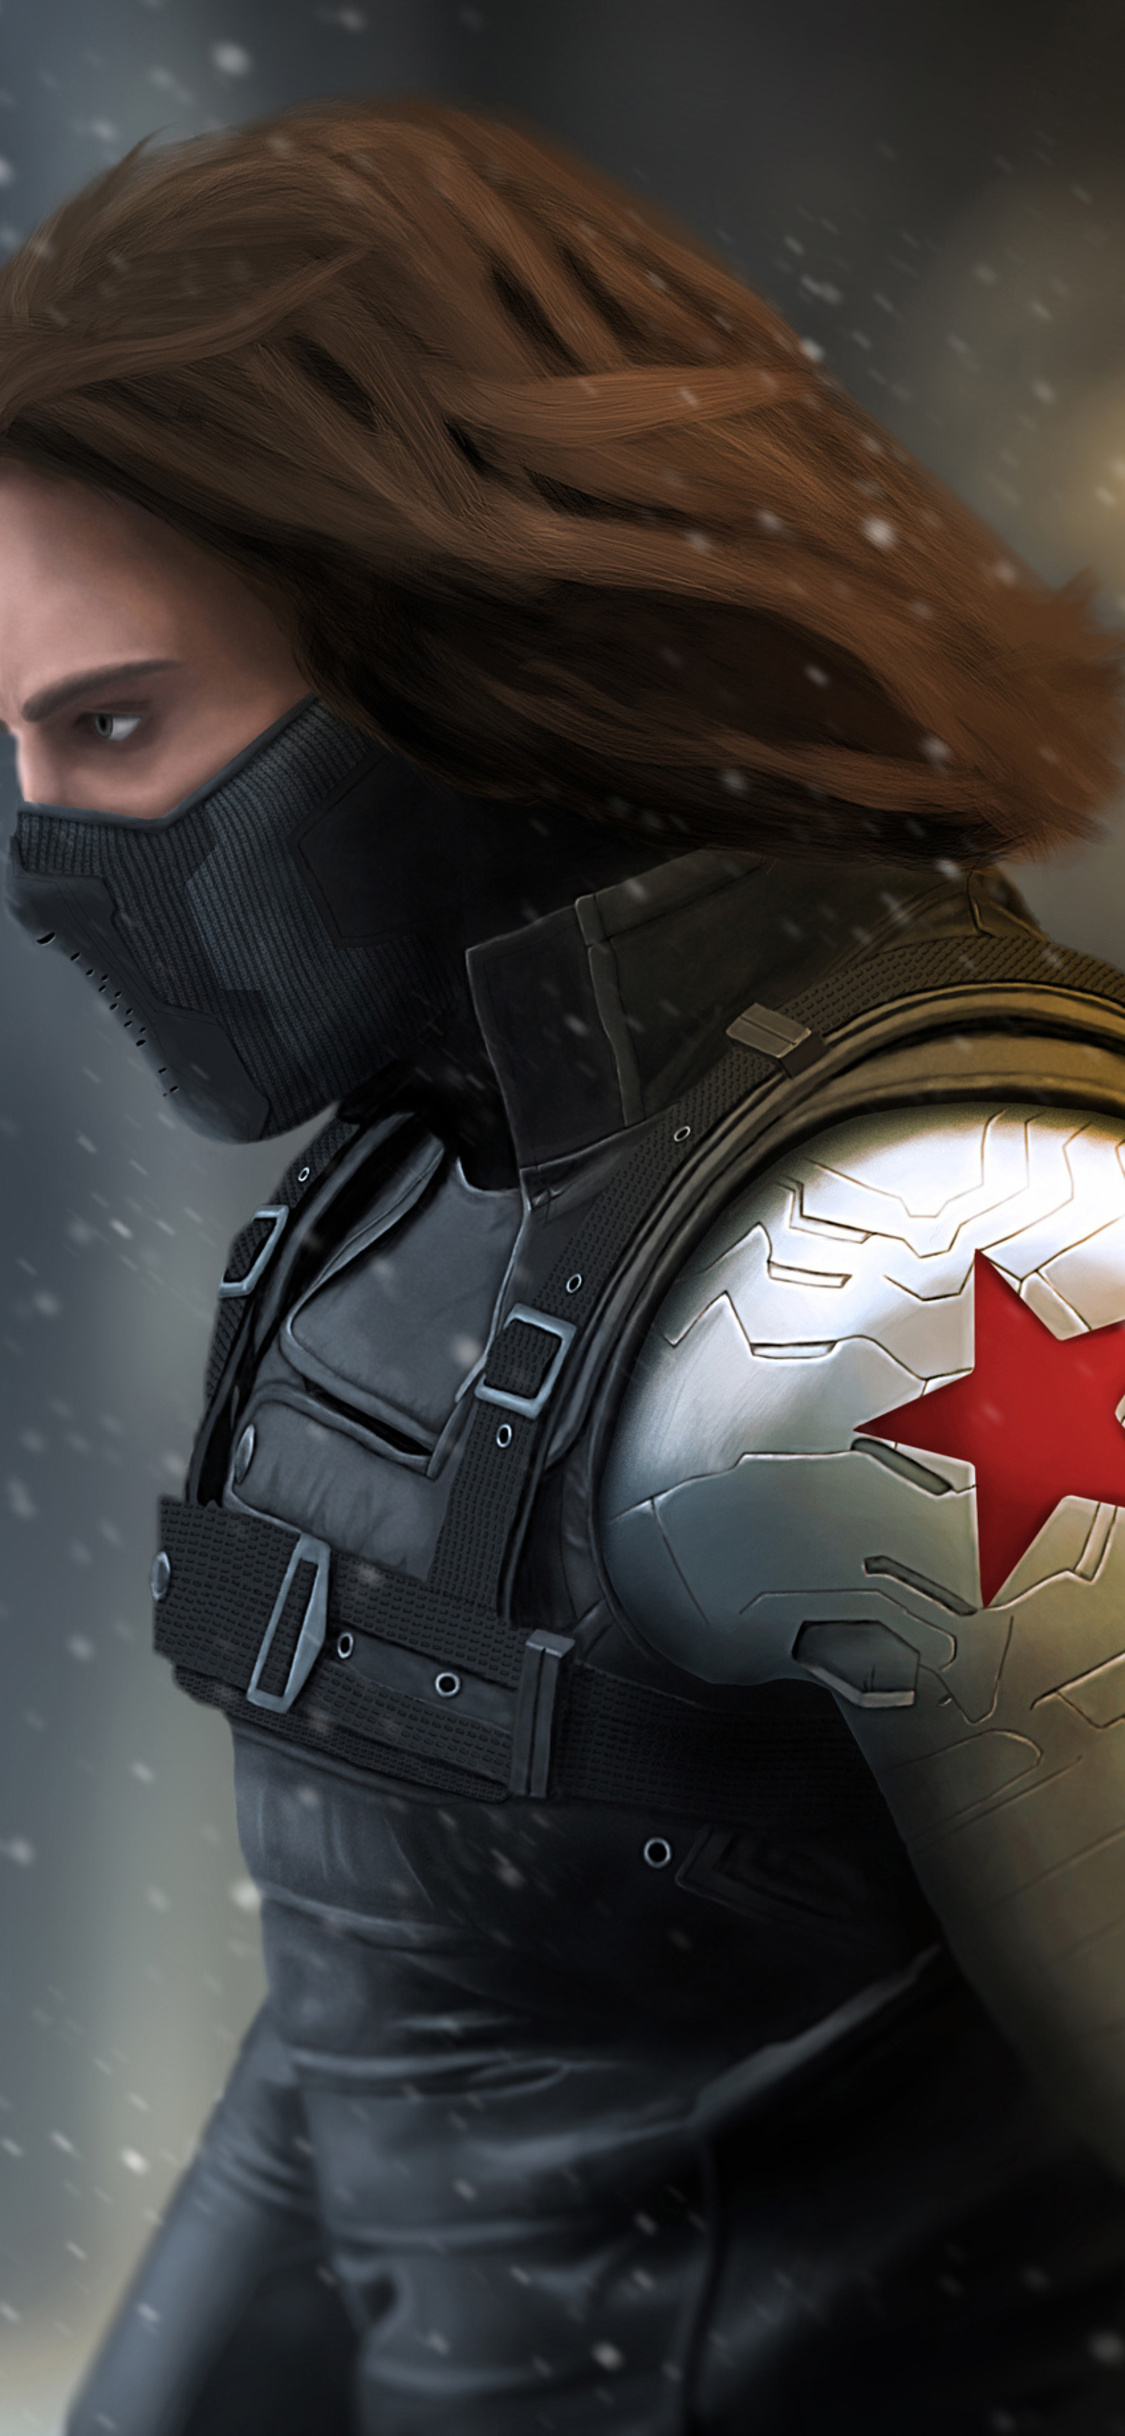 1125x2436 Winter Soldier 4k Iphone XS,Iphone 10,Iphone X HD